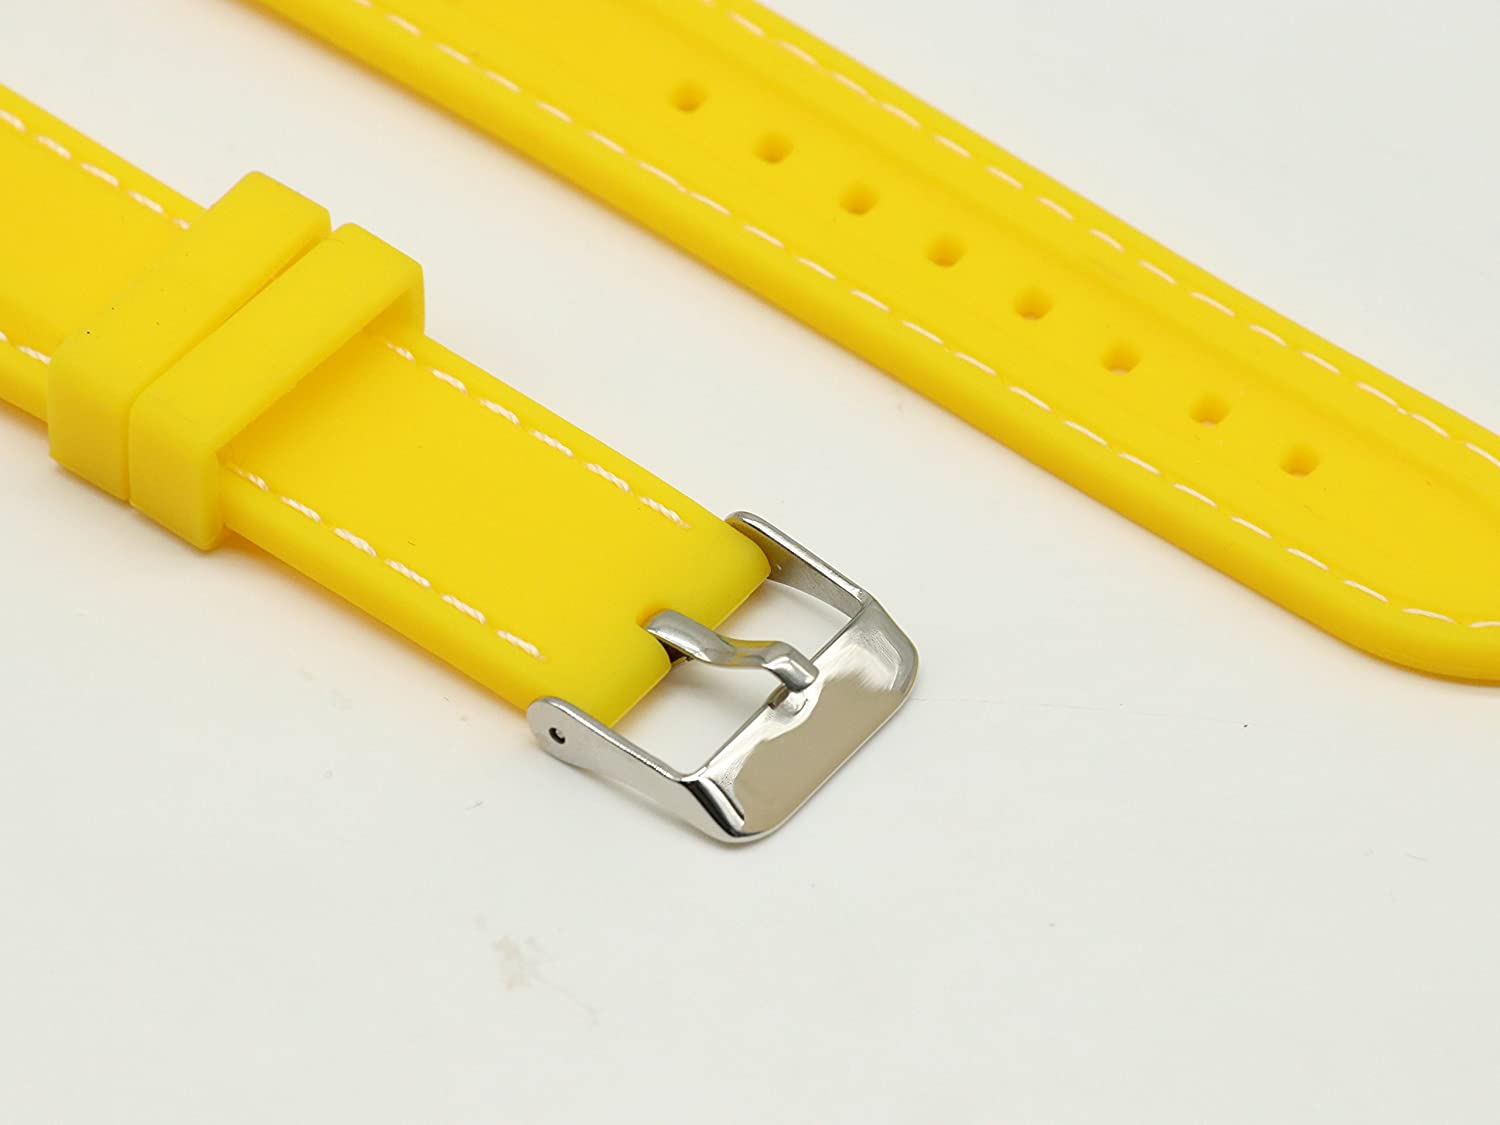 Silicon Yellow Watch Bands Replacements 18mm With White Line Stainless Steel Buckle for Smart Watches | Amazon.com